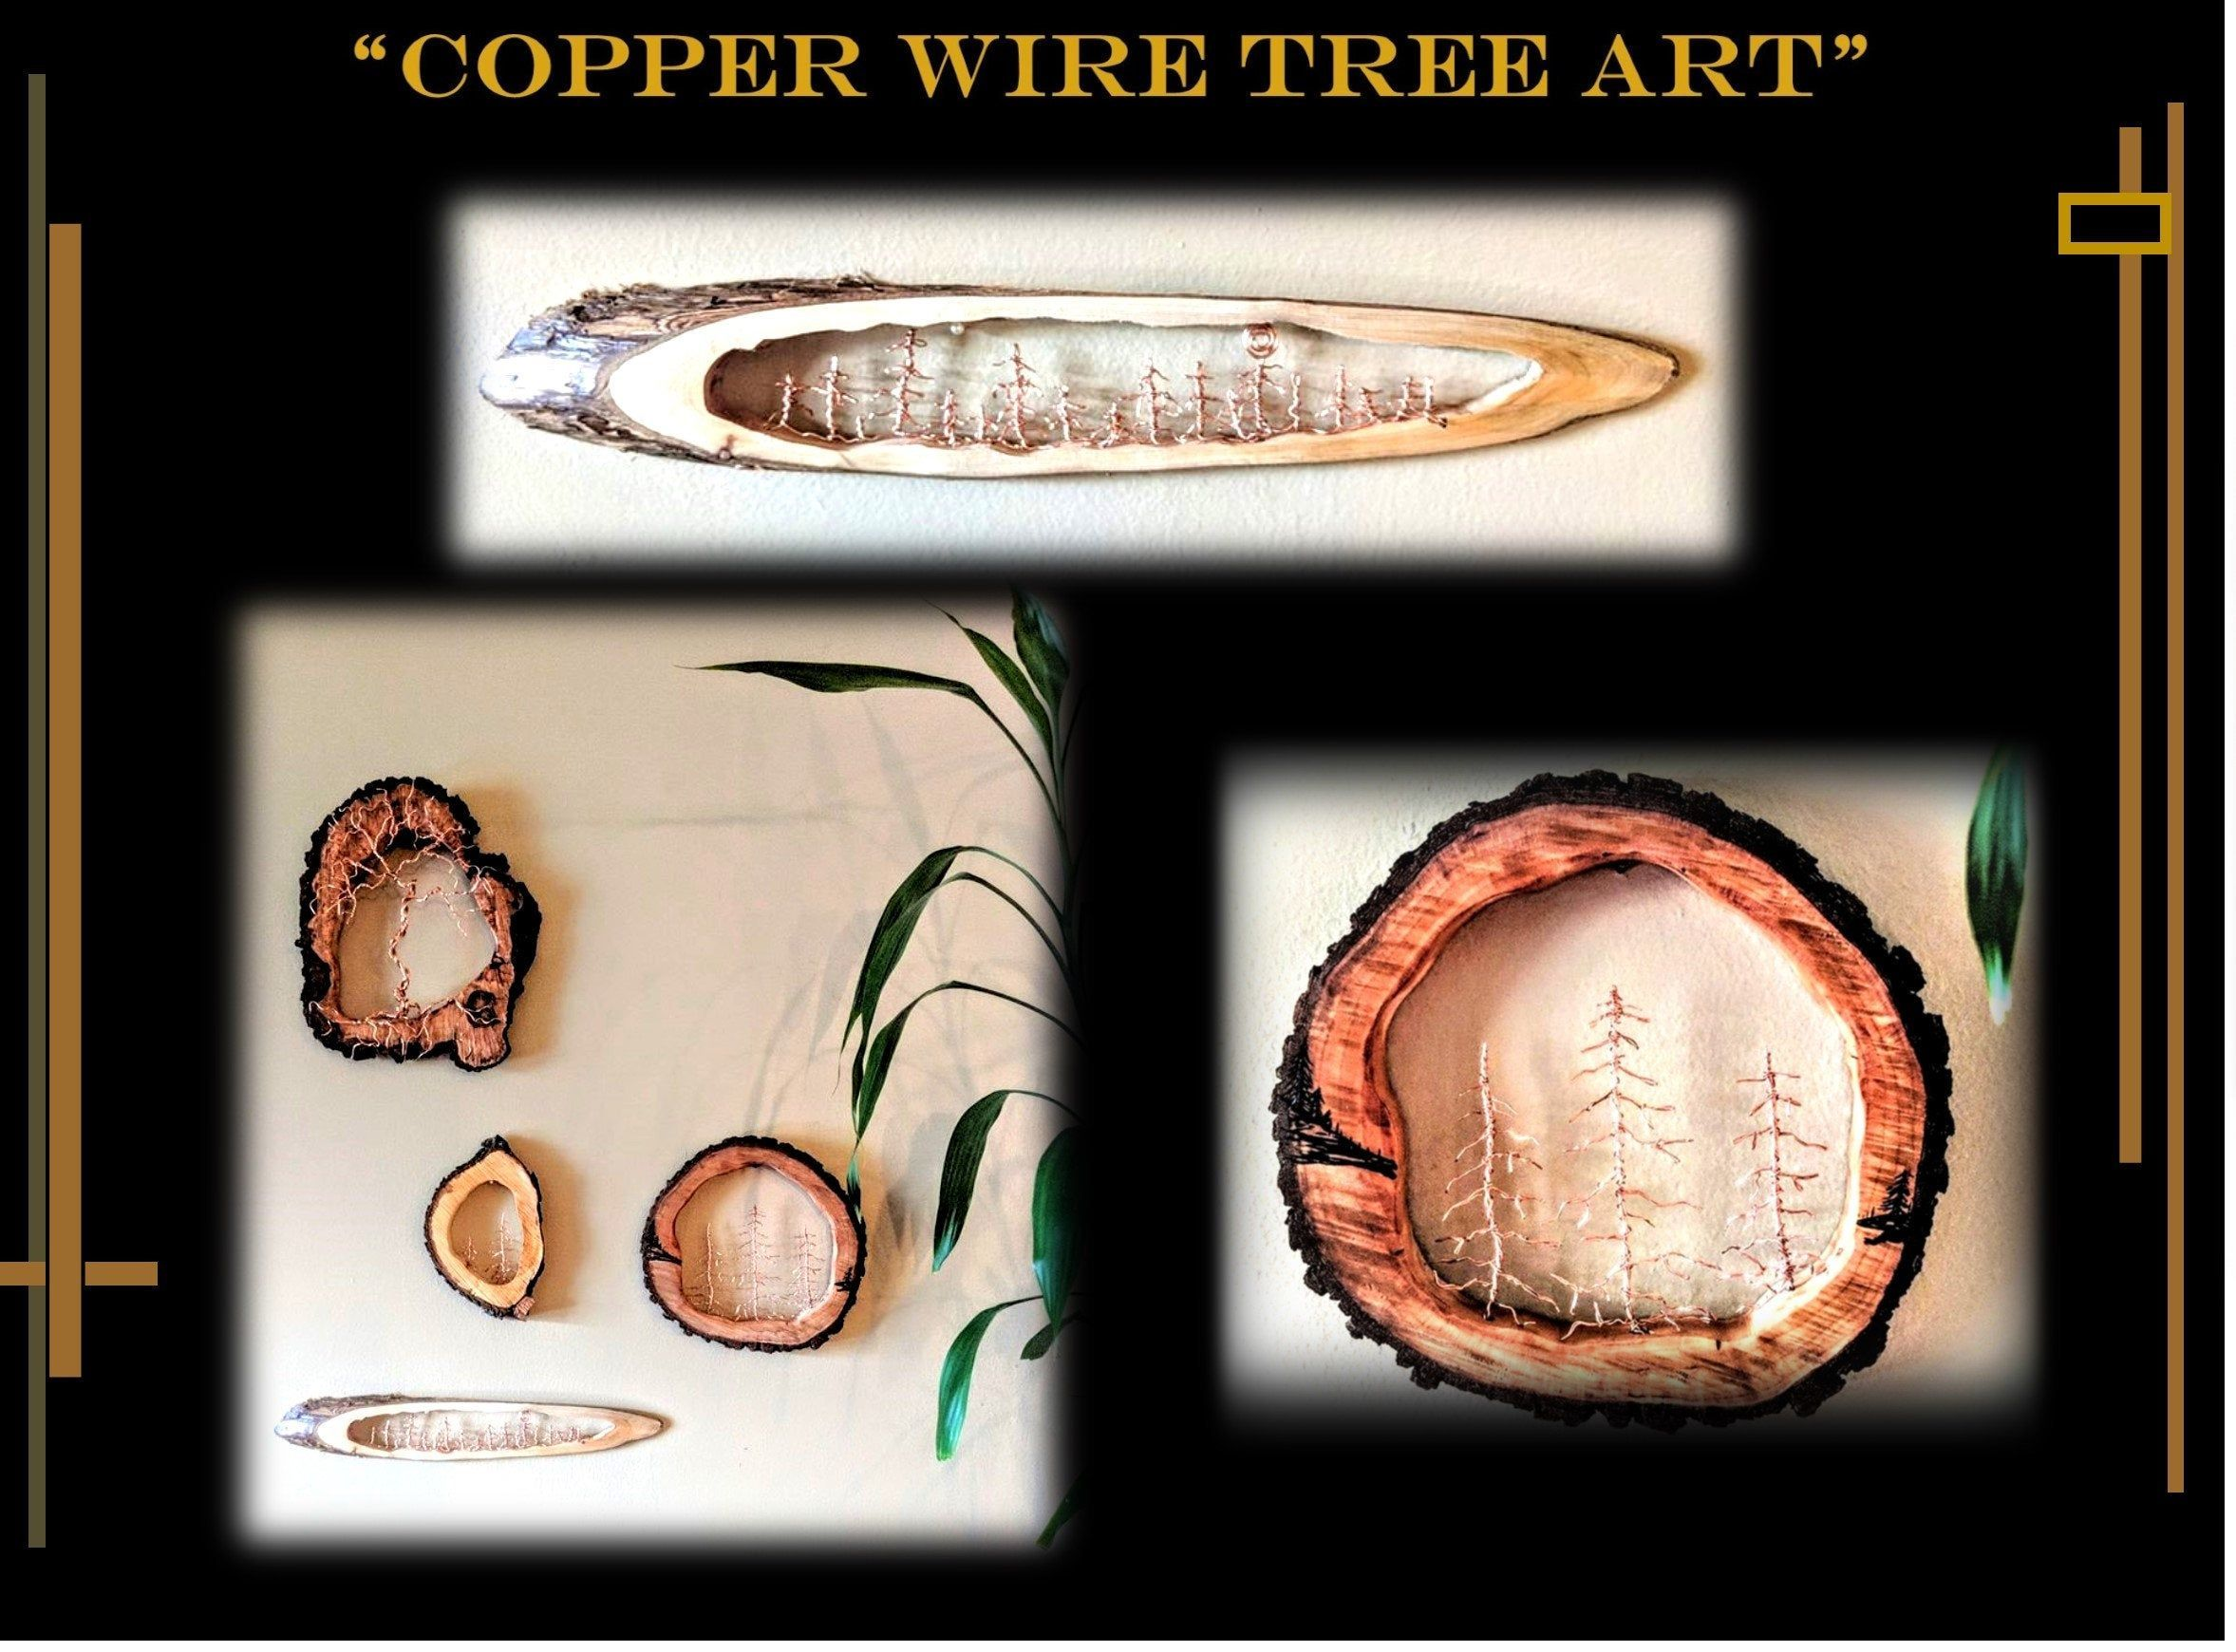 cool gifts, Rustic,lodge, cabin, decor. wire trees - tree art, sculpture,#art #cabin #cool #decor #gifts #rusticlodge #sculpture #tree #trees #wire